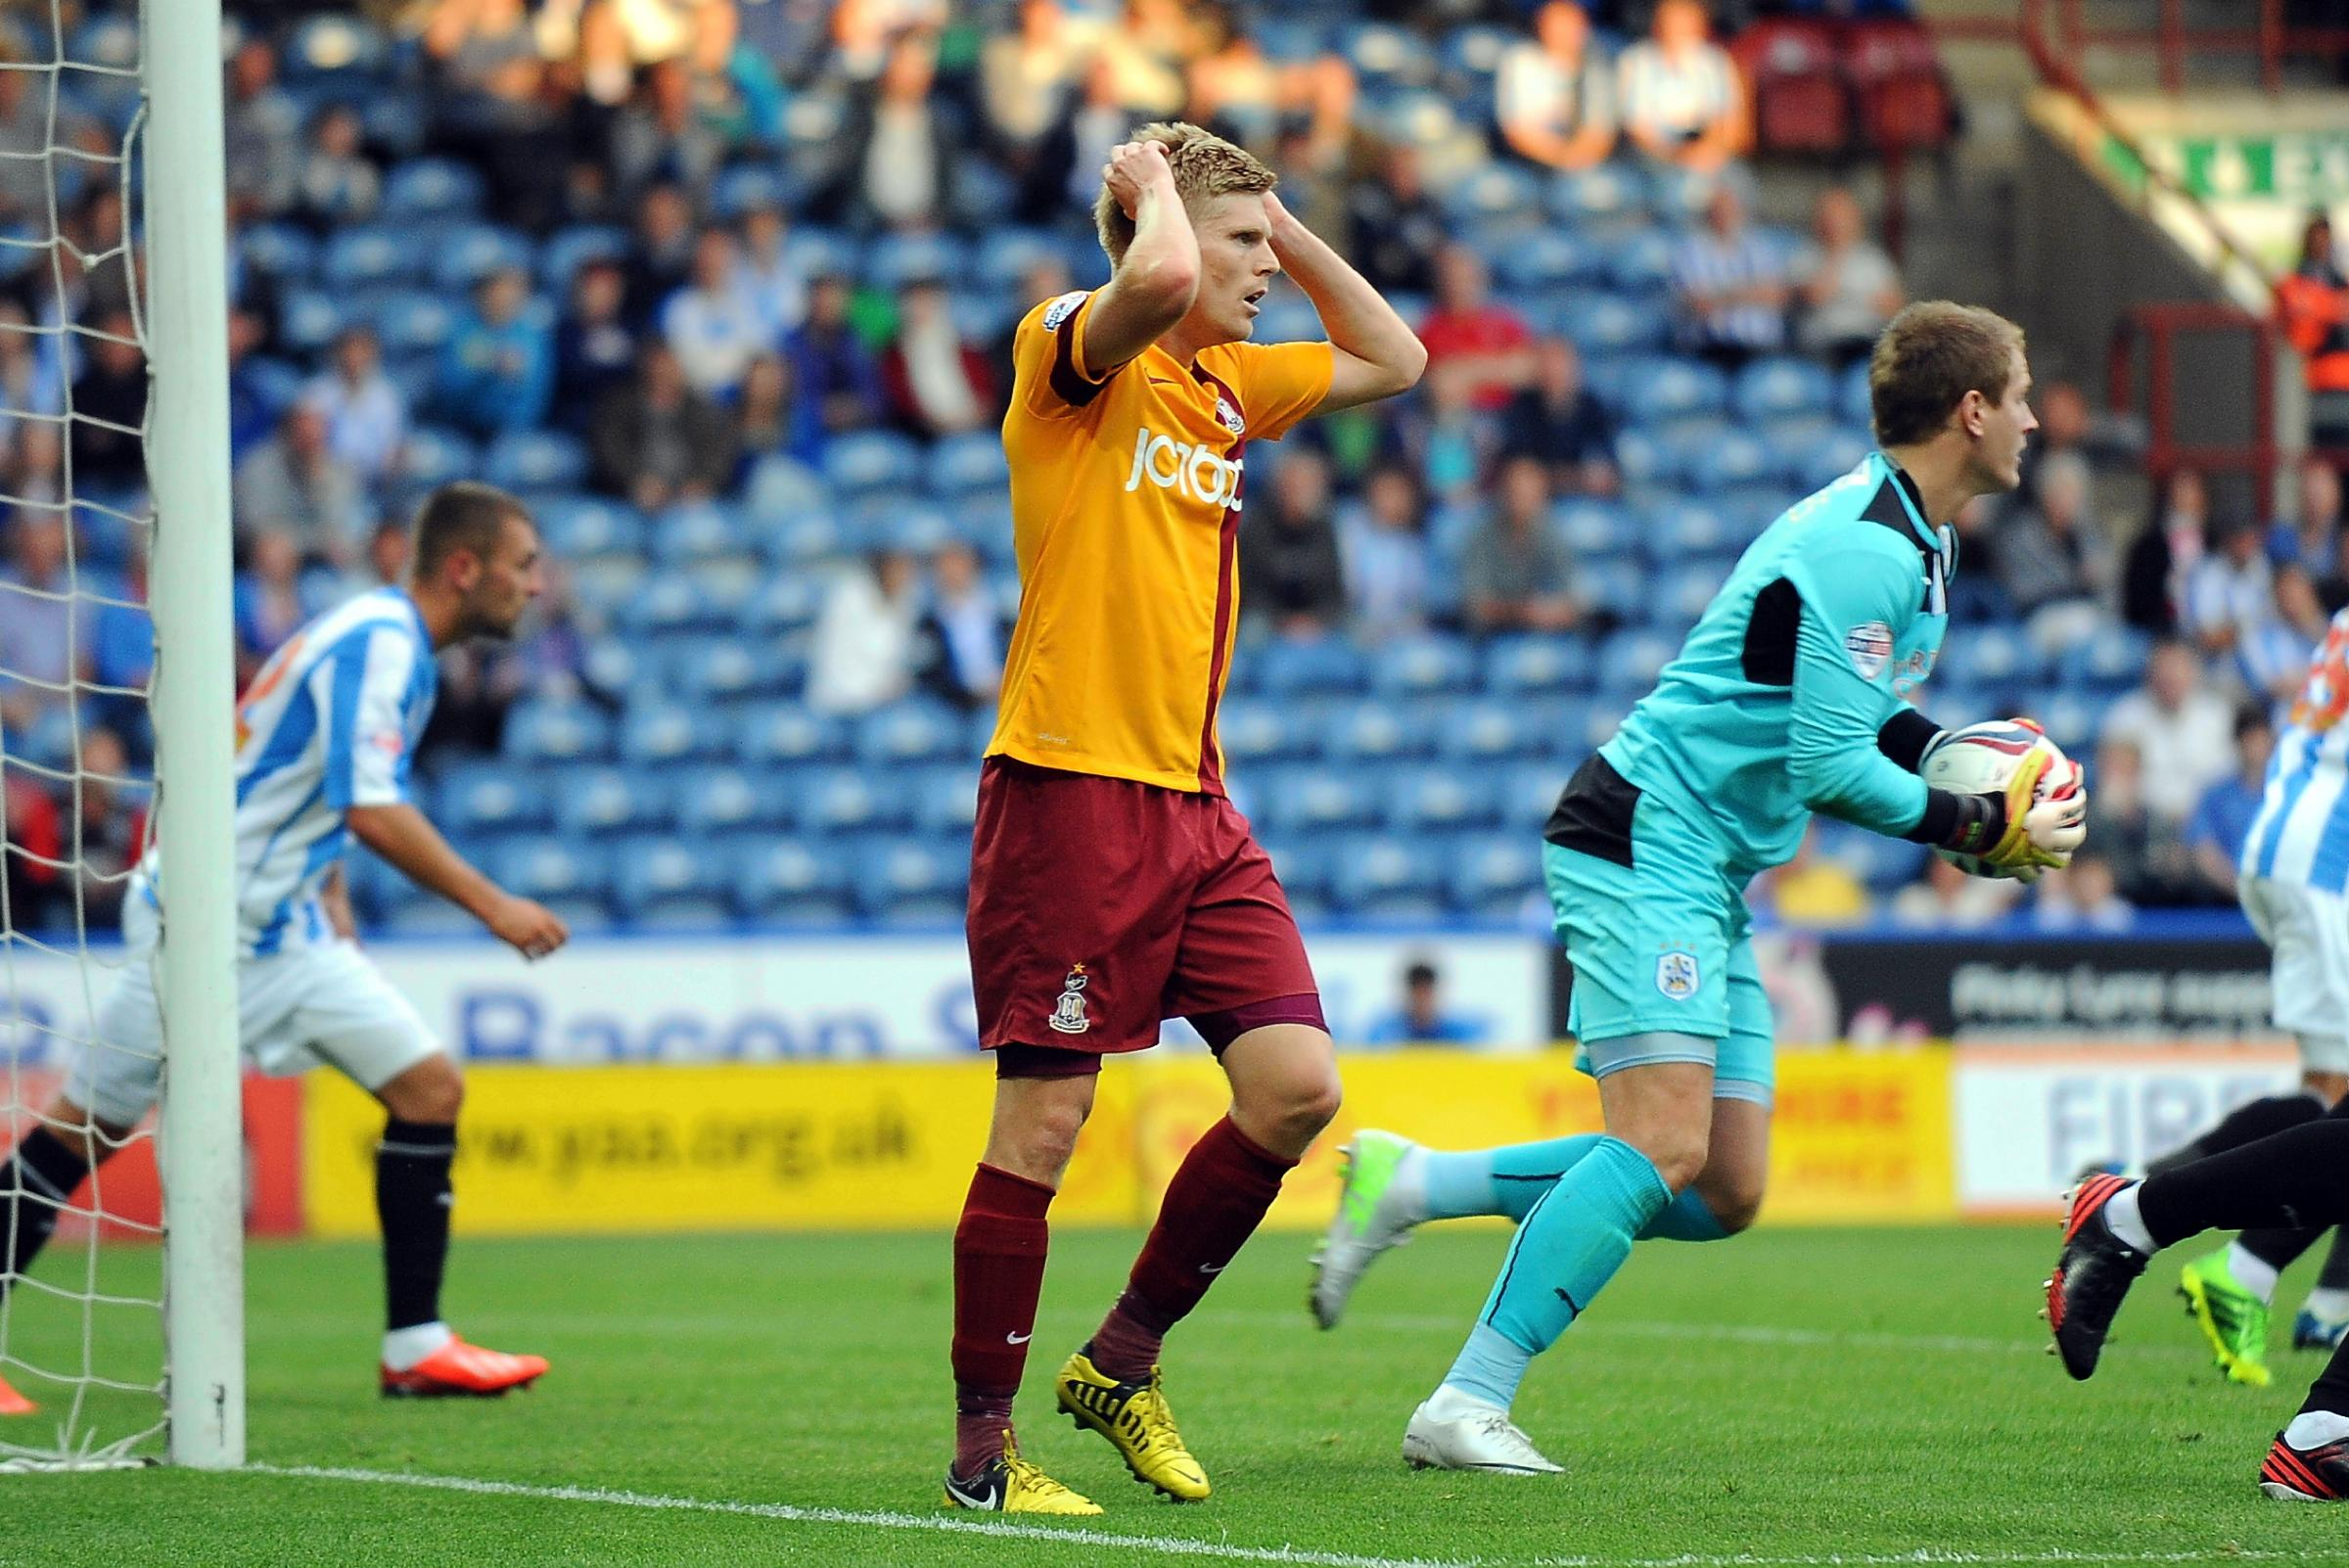 Connell and Ravenhill leave Bradford City for Northampton